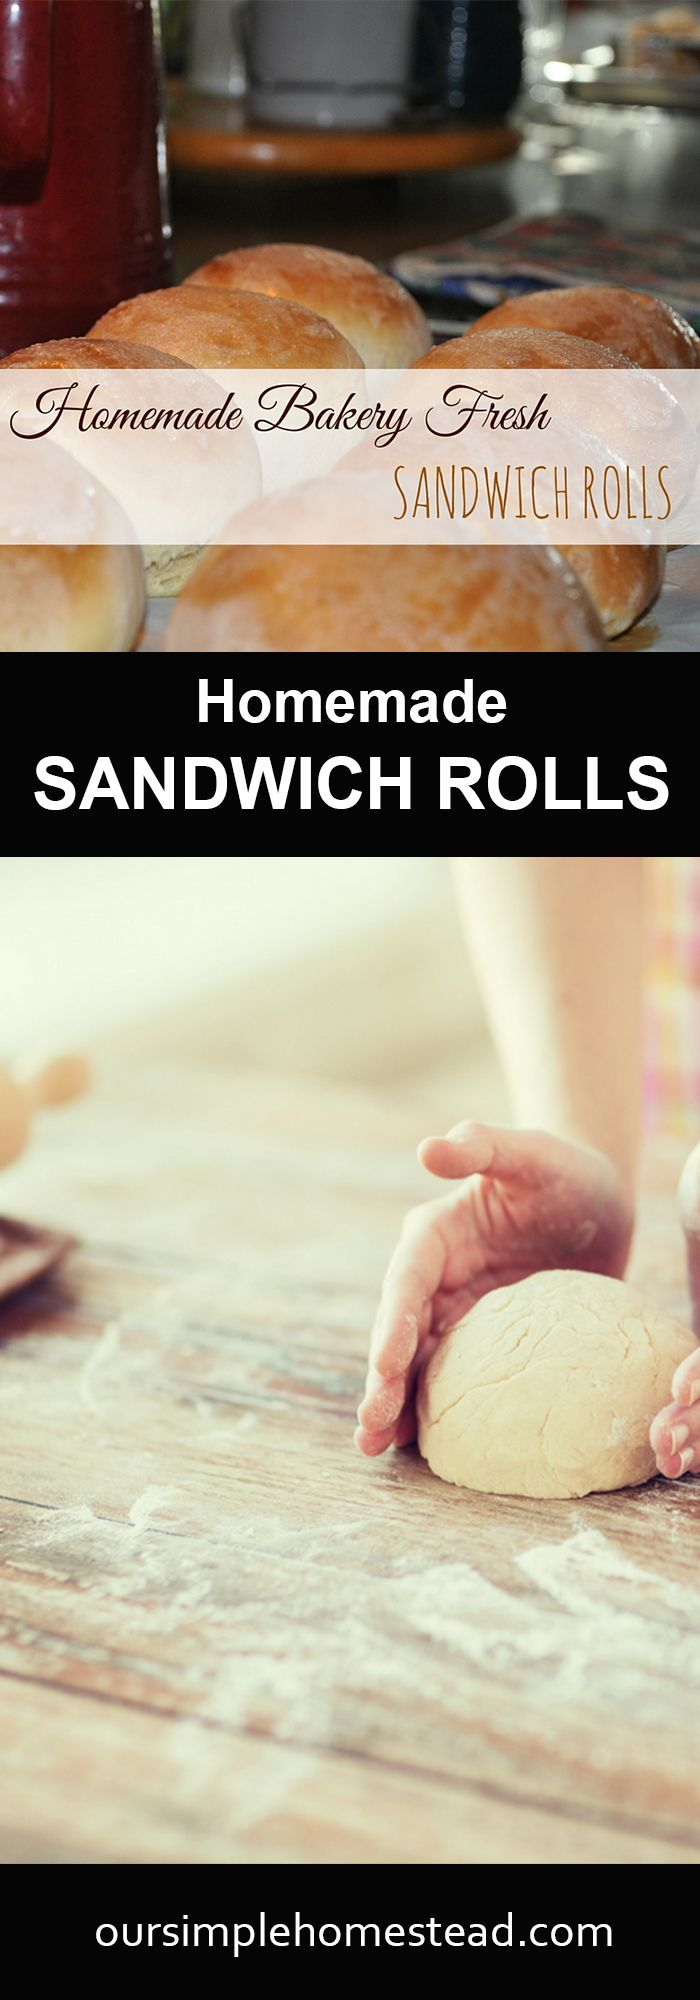 Homemade Sandwich Rolls - These hearty homemade sandwich rolls are becoming a staple for my family! We are loving them for any kind of sandwich, but they work the best for homemade sloppy joes and hamburgers.